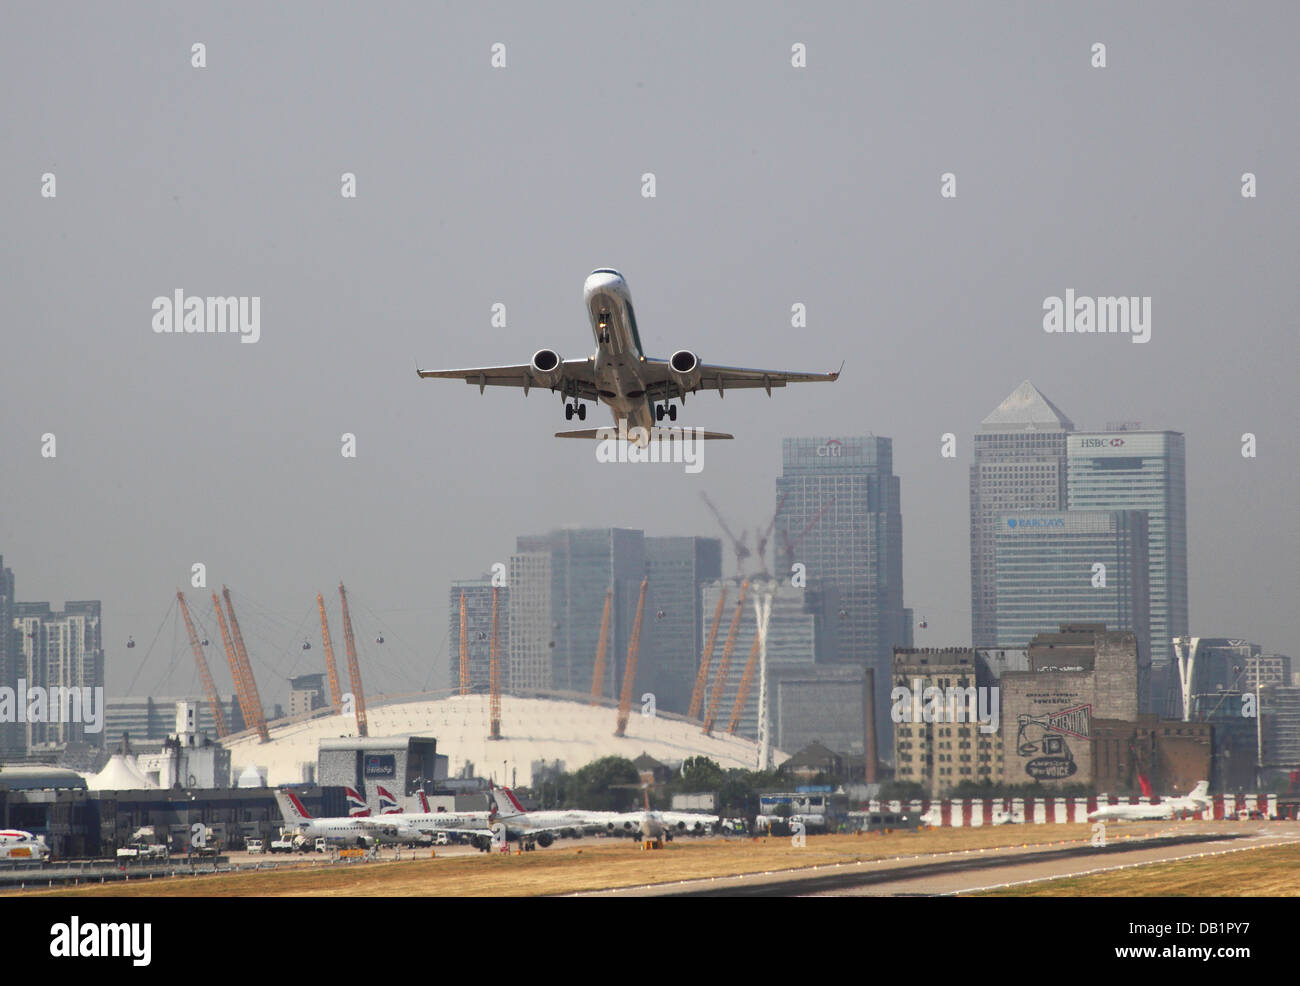 A passenger jet takes off from London City Airport with Canary Wharf and the Millennium Dome in the background - Stock Image